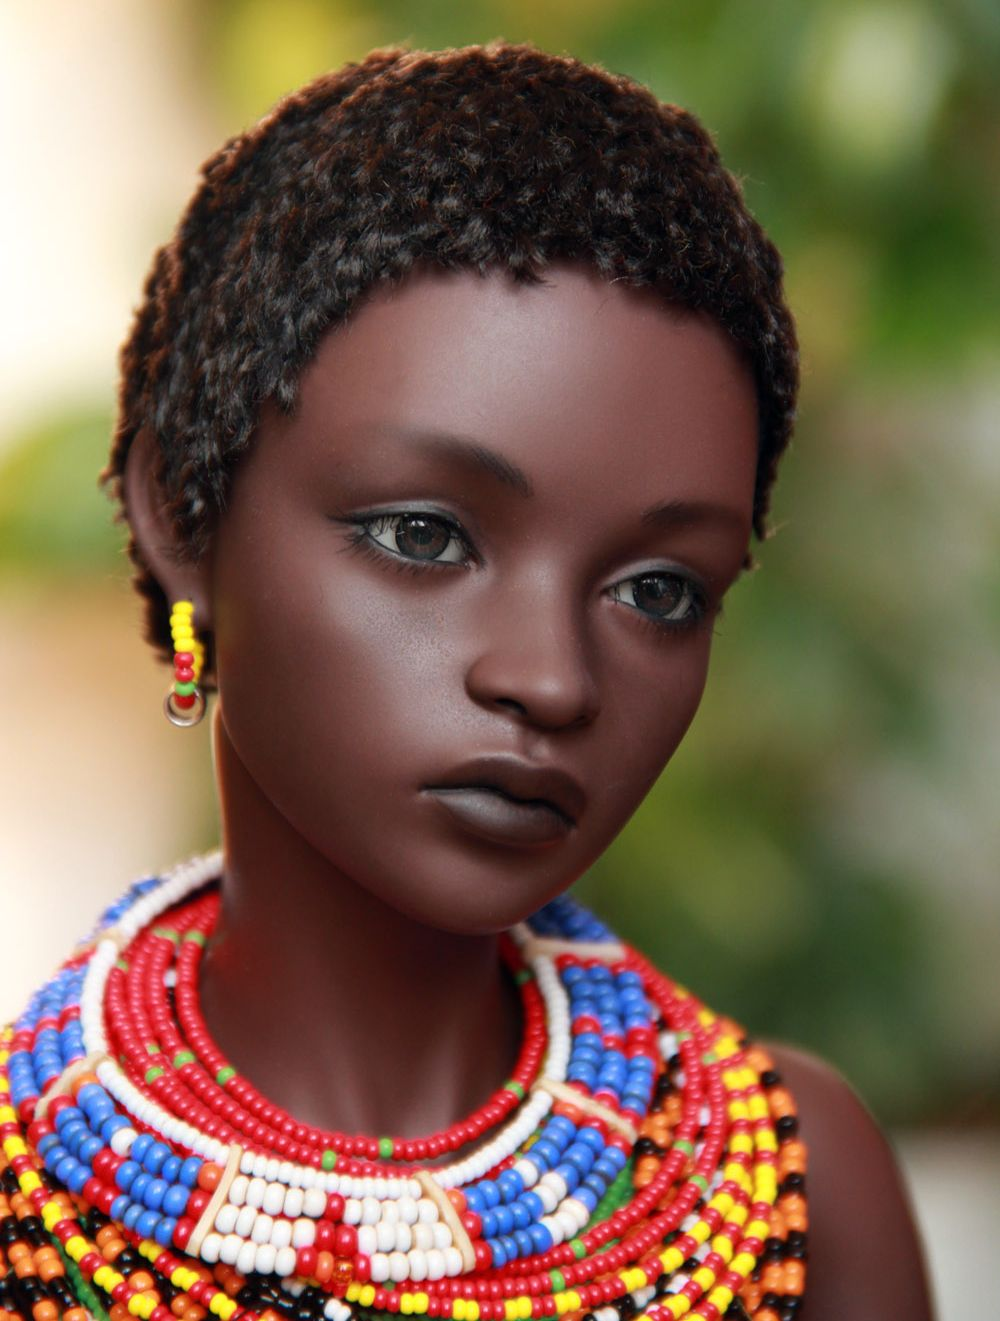 I have no details on who made this doll. All I know is that she's incredible!